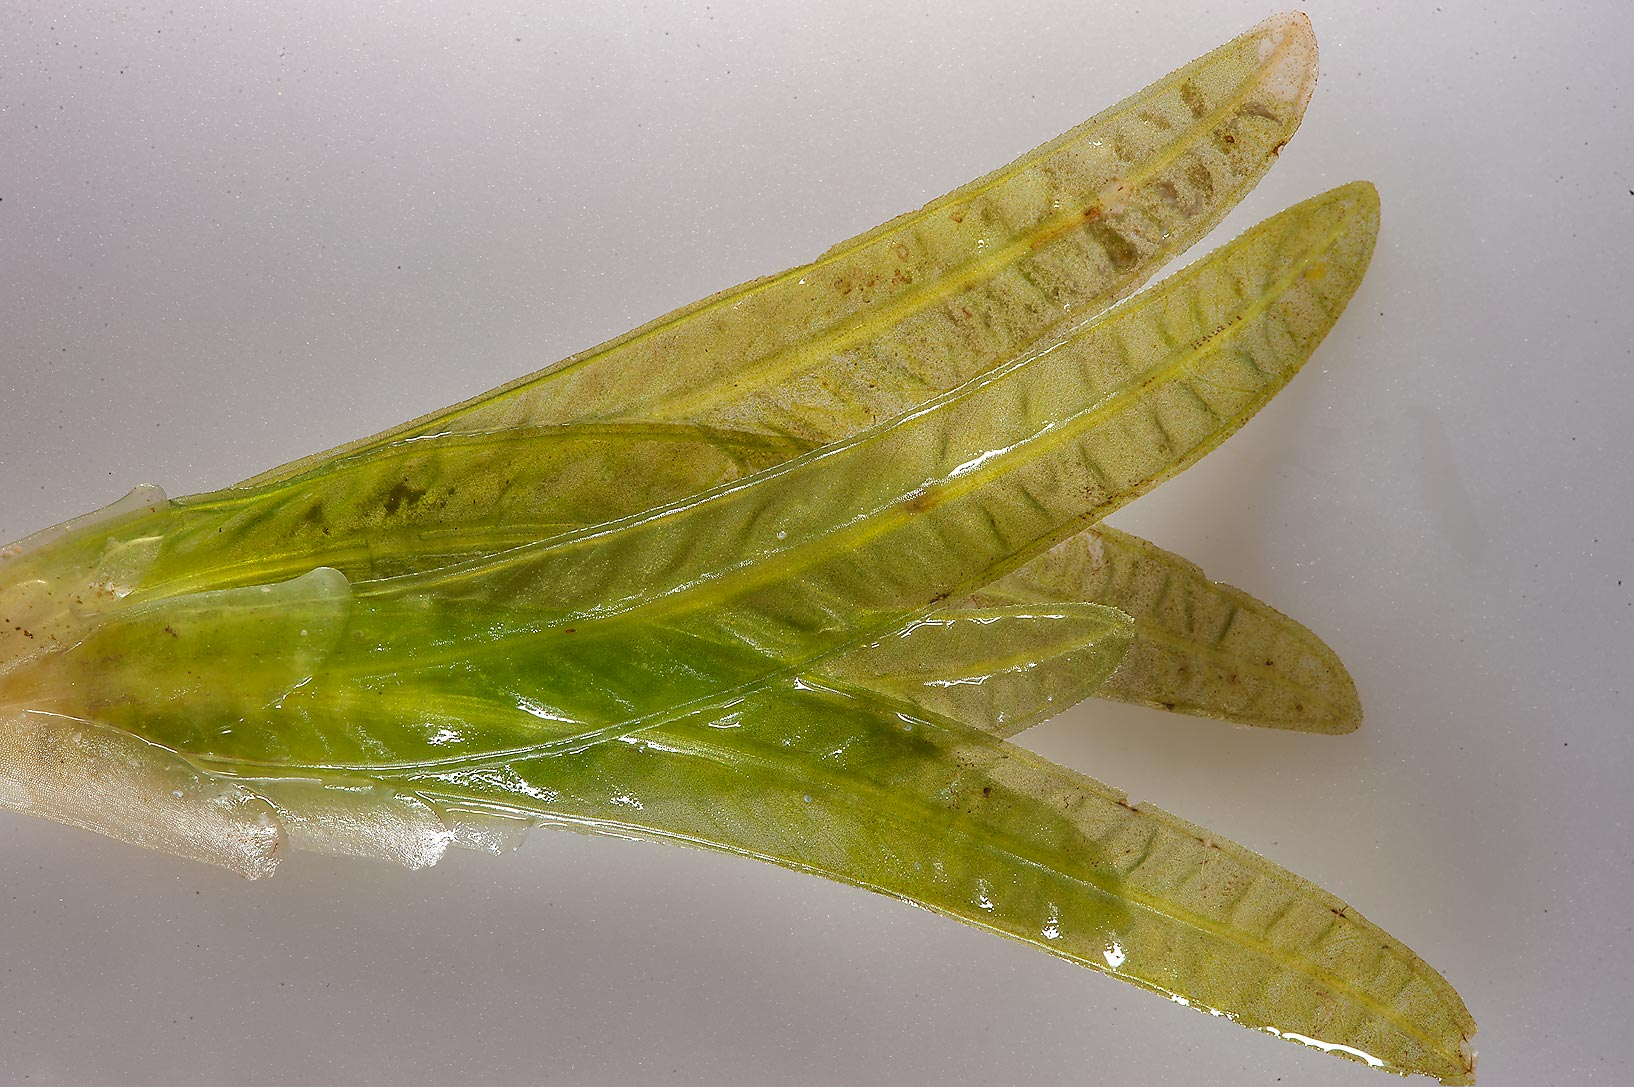 Leaves of seagrass (Halophila stipulacea) with...Jazirat Bin Ghanim). Al Khor, Qatar